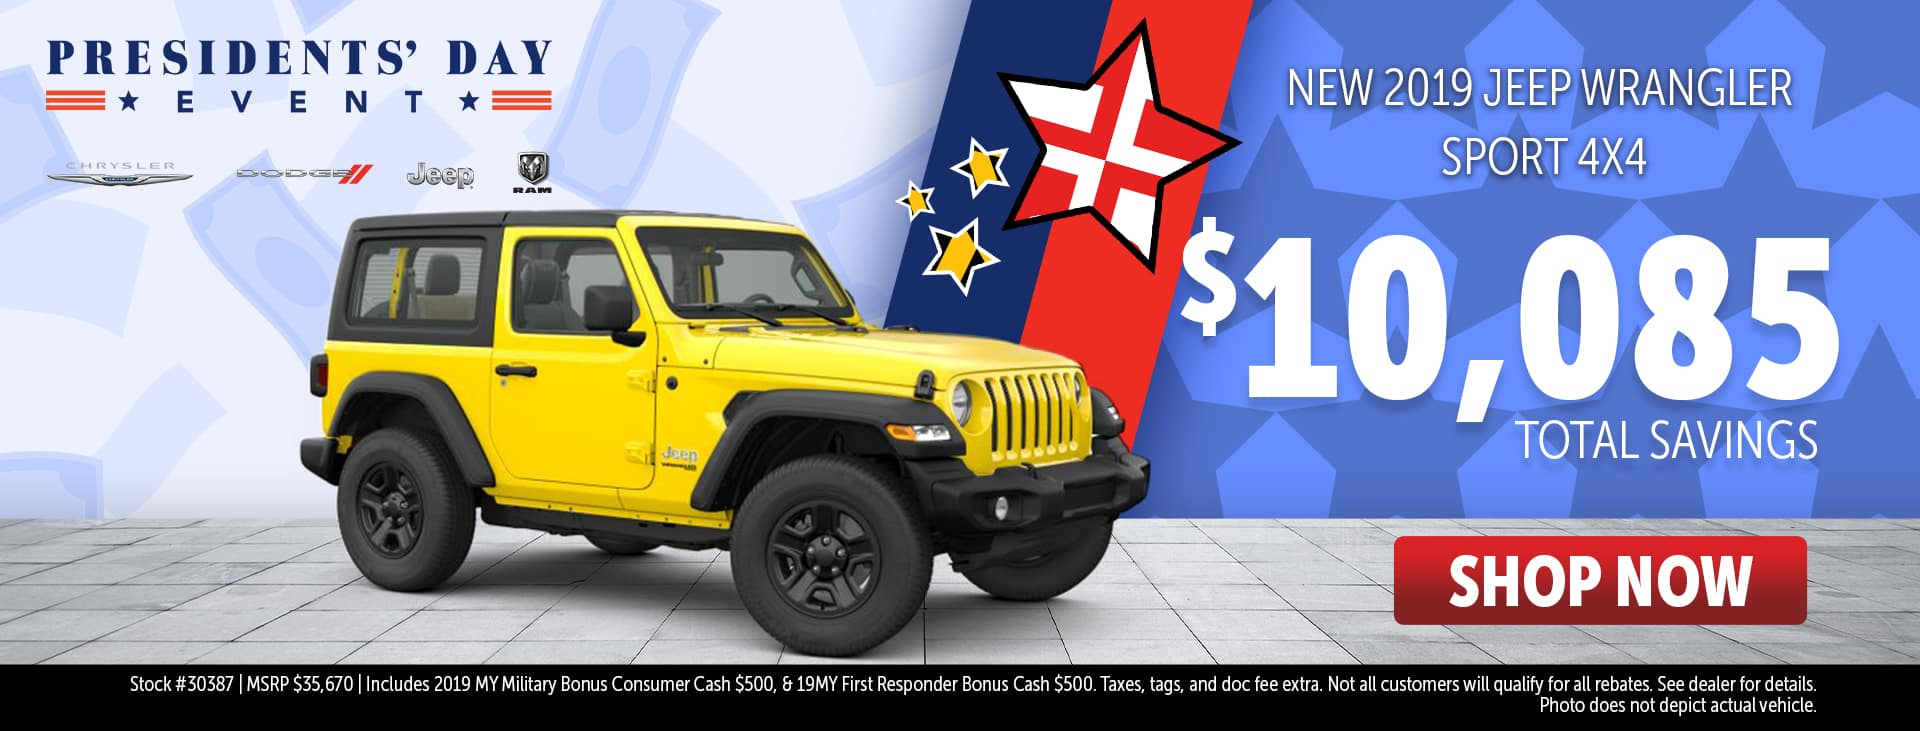 Presidents' Day Event Price for 2019 Jeep Wrangler